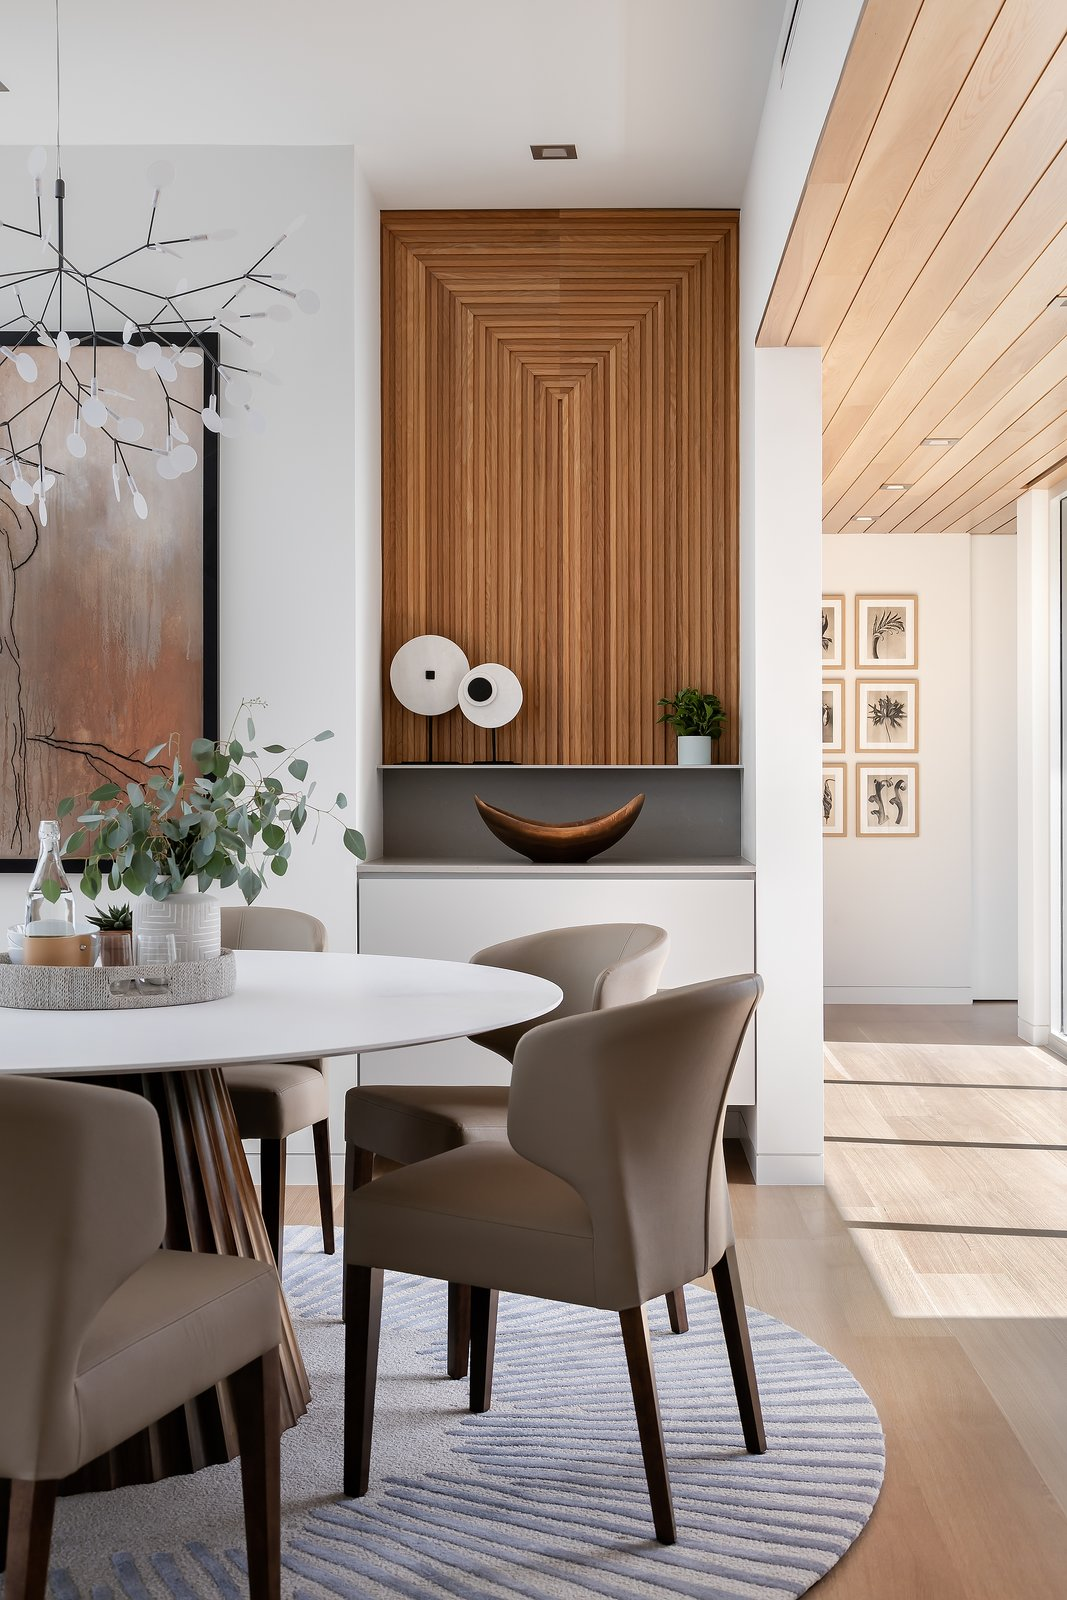 Dining Room, Accent Lighting, Ceiling Lighting, Medium Hardwood Floor, Pendant Lighting, Table, Recessed Lighting, Storage, and Chair  Bayview House by Leader Design Studio